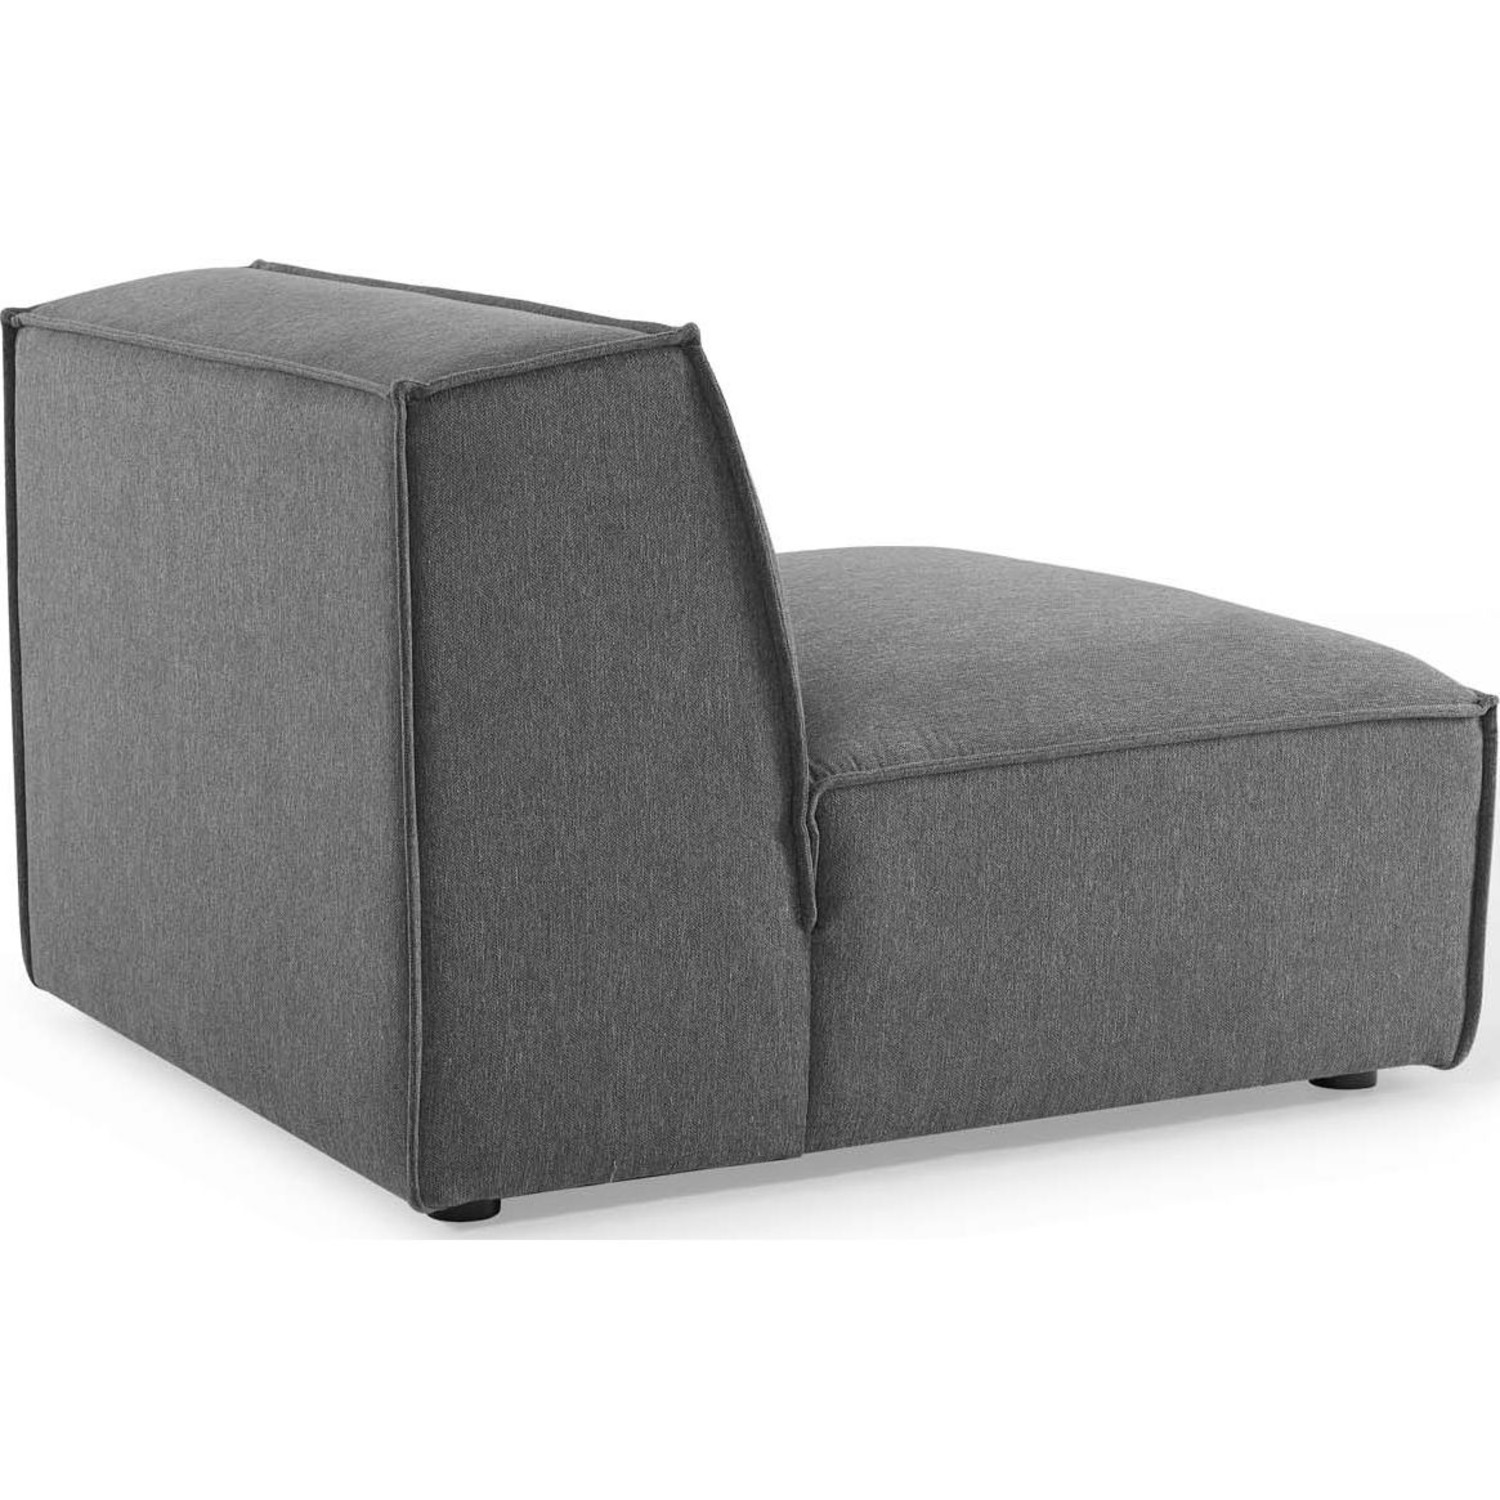 4-Piece Sectional Sofa In Charcoal Foam Padding - image-8